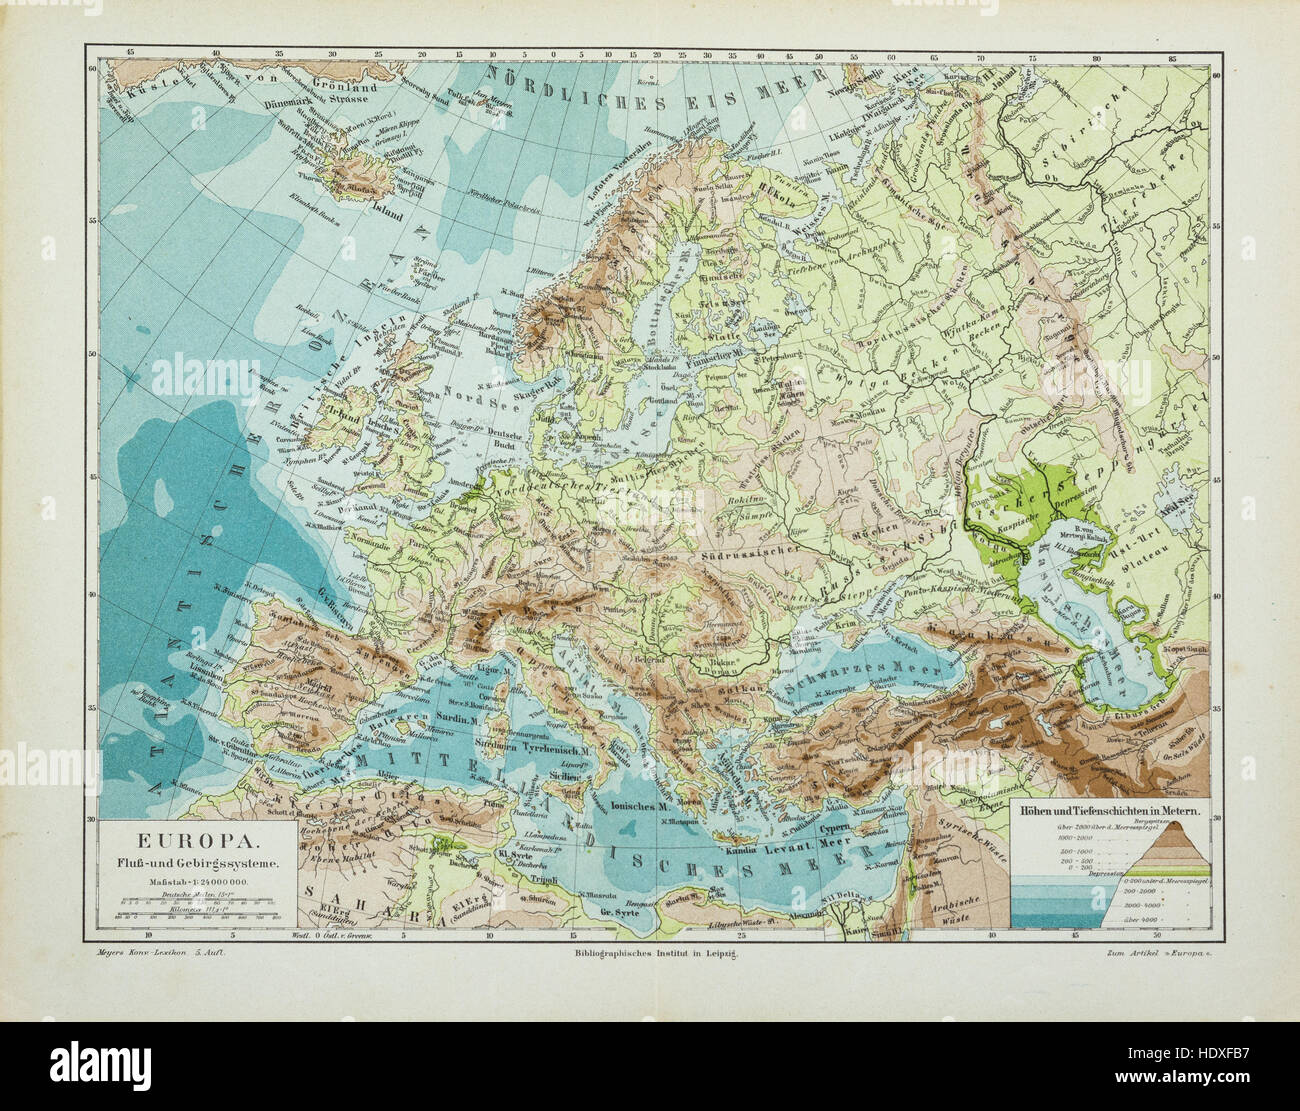 Old and vintage map of Europe - Stock Image